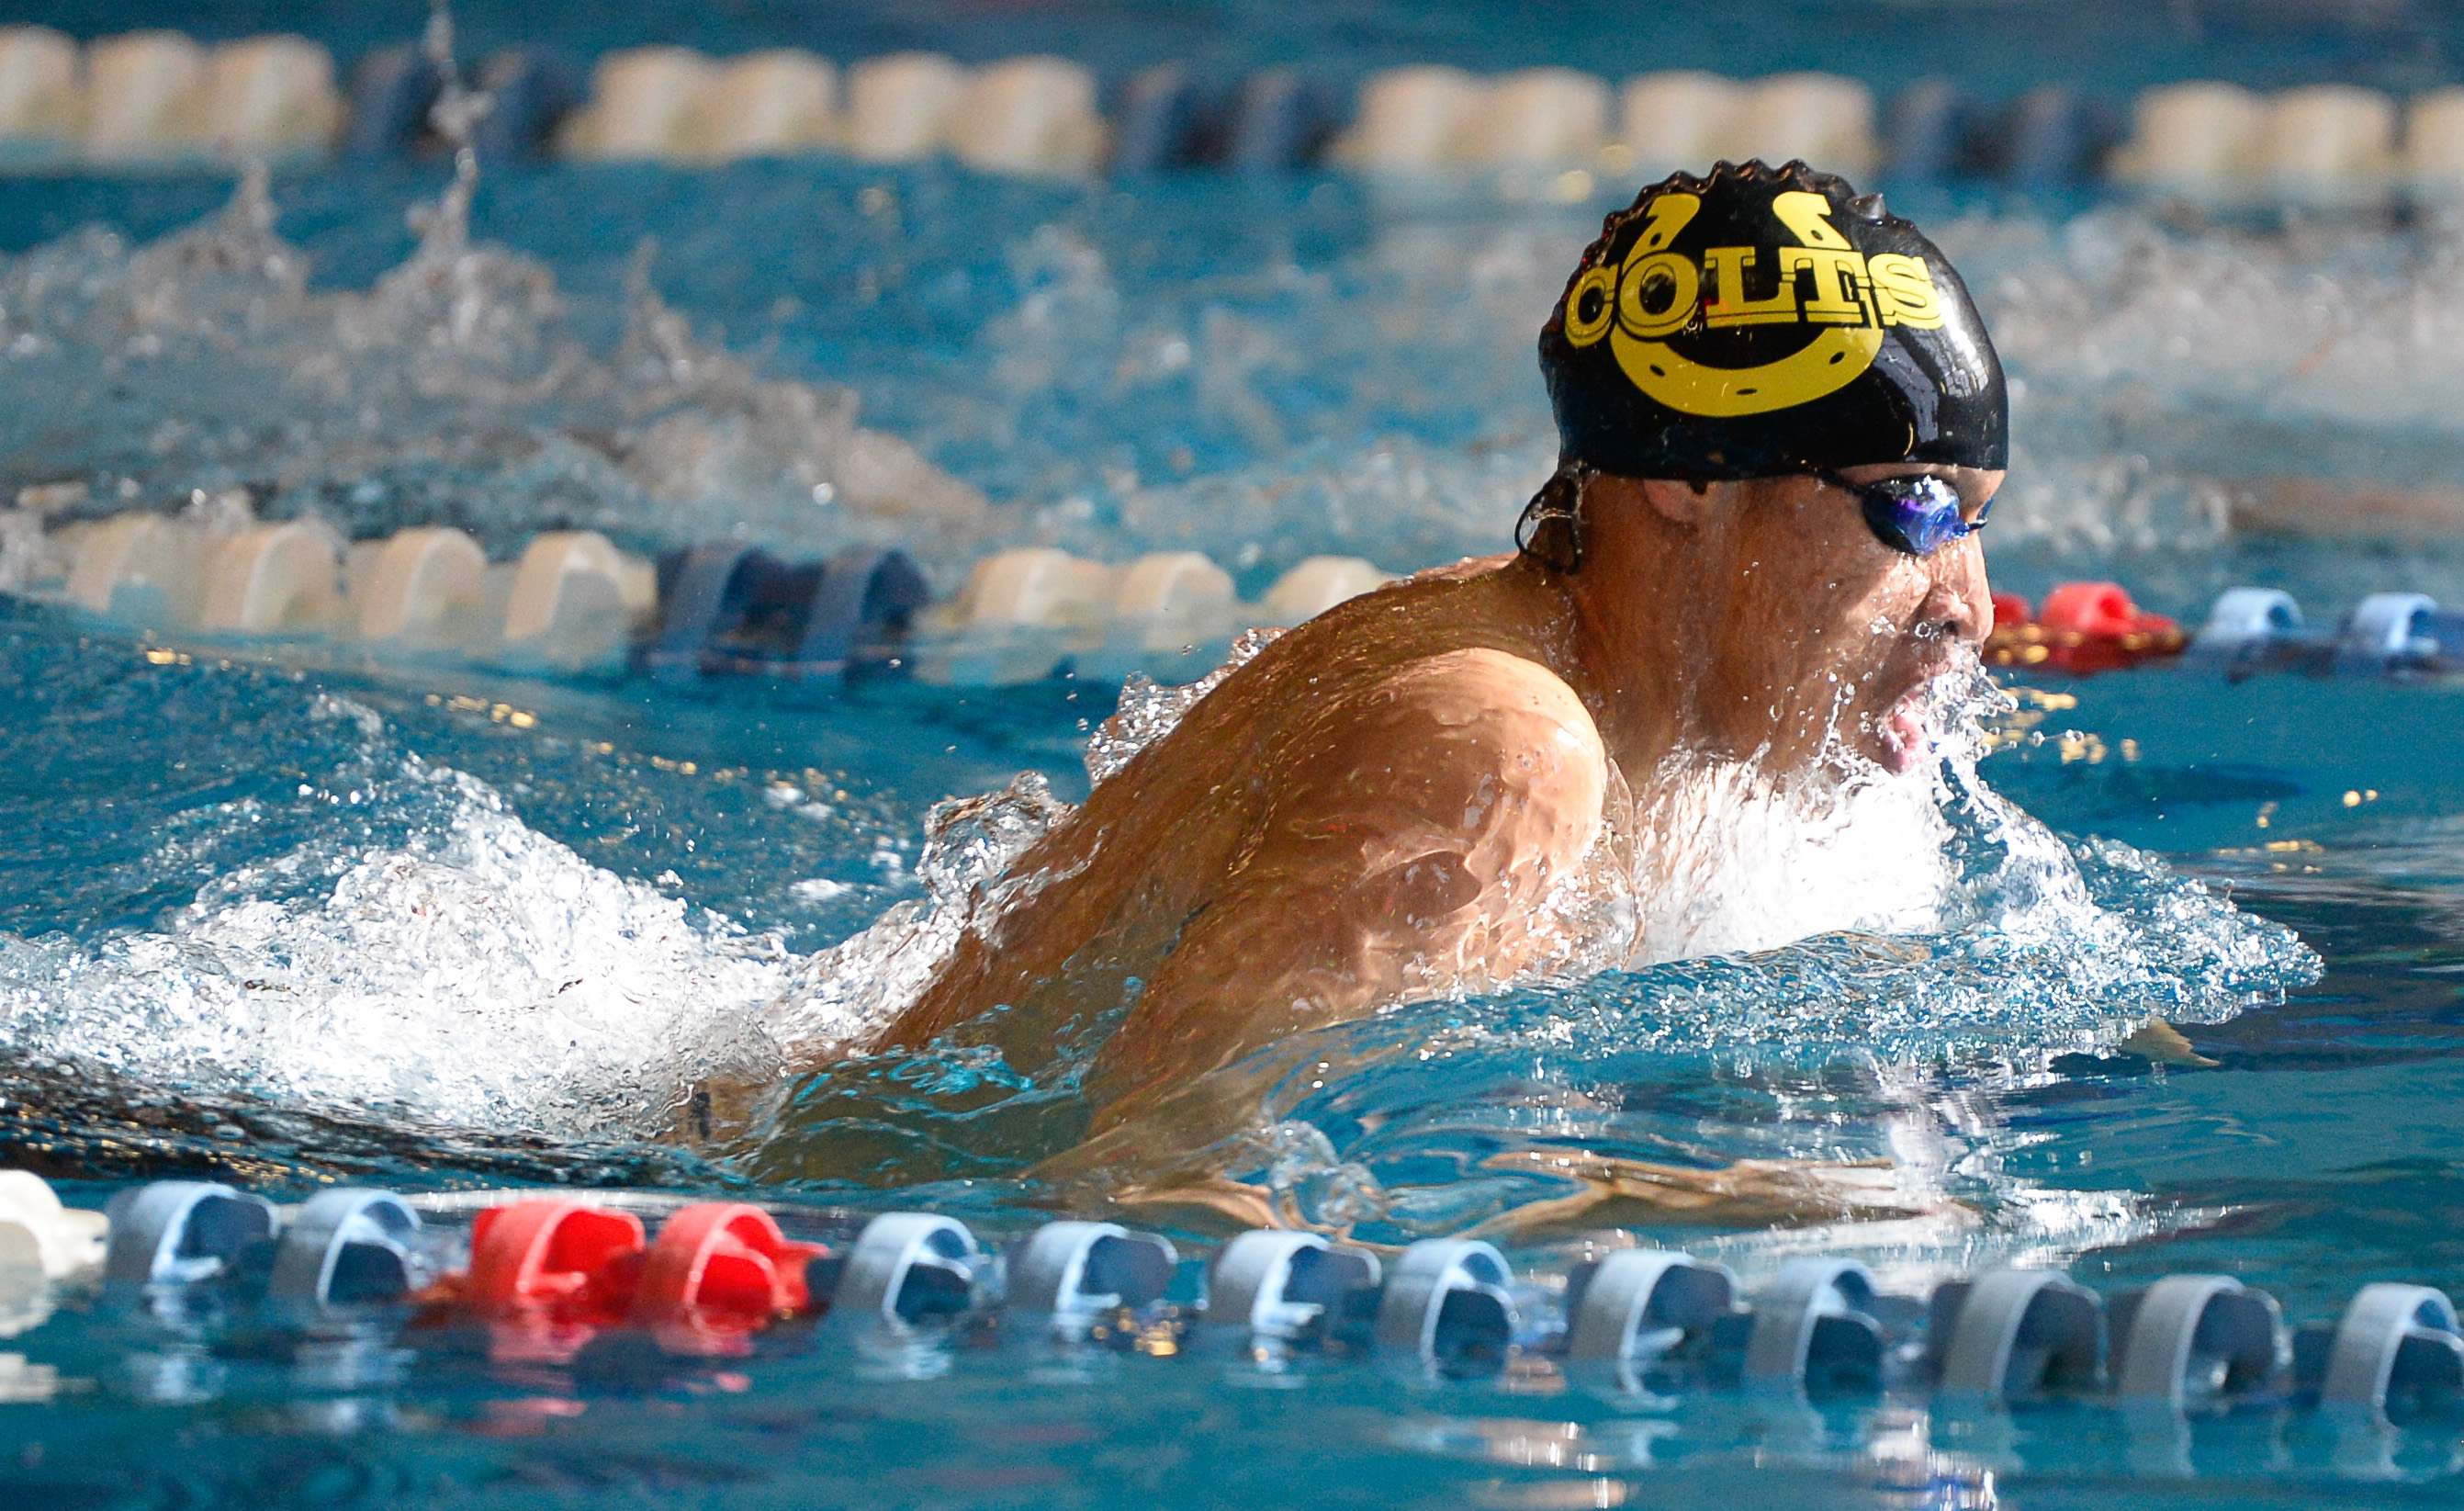 (Francisco Kjolseth  |  The Salt Lake Tribune)  Blayze Kimble of Cottonwood swims to a first win in the Men 200 Yard IM at the high school swimming 5A State Championships in Bountiful, Friday February 9, 2018.